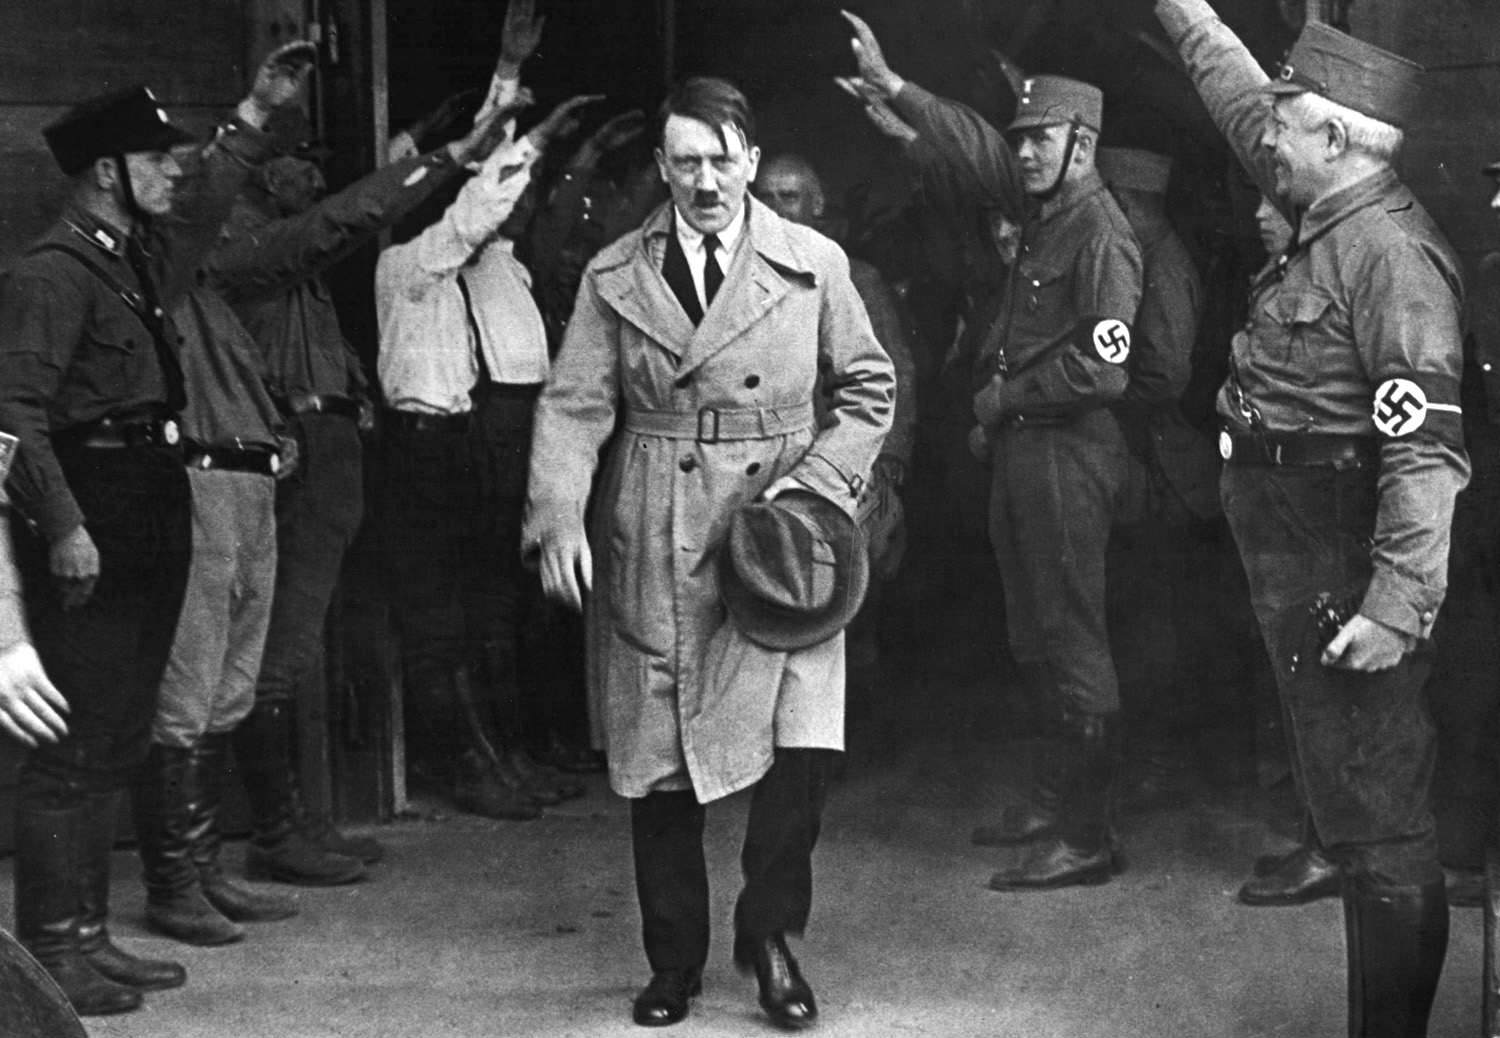 Hitler Had A Shocking Fetish That Will Leave You Speechless 7106028925 c6f5266b87 o